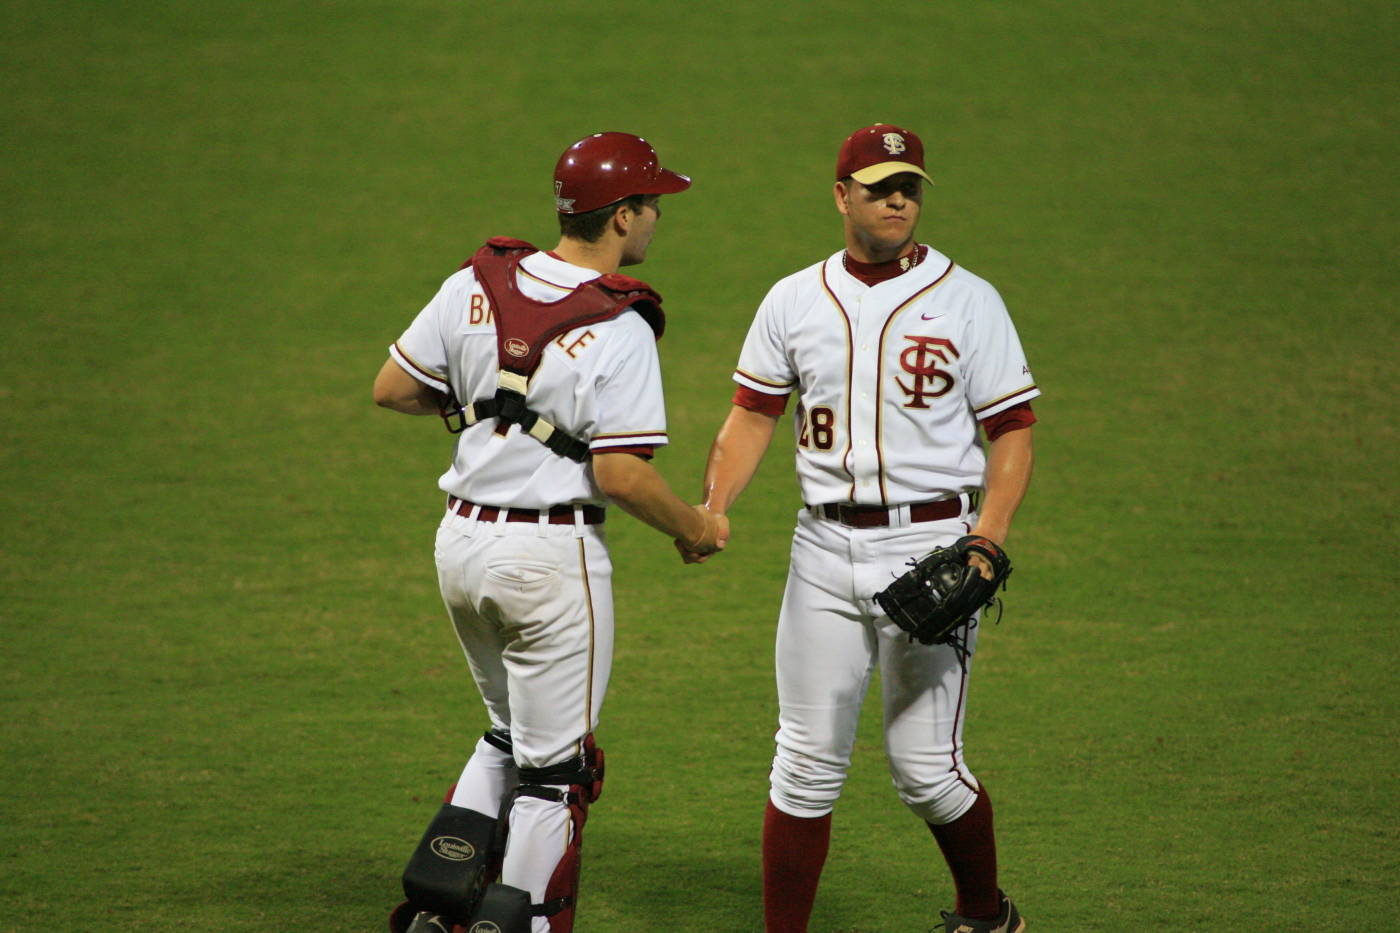 Parker Brunelle and Tyler Everett shake hands after wrapping up the game in the ninth inning